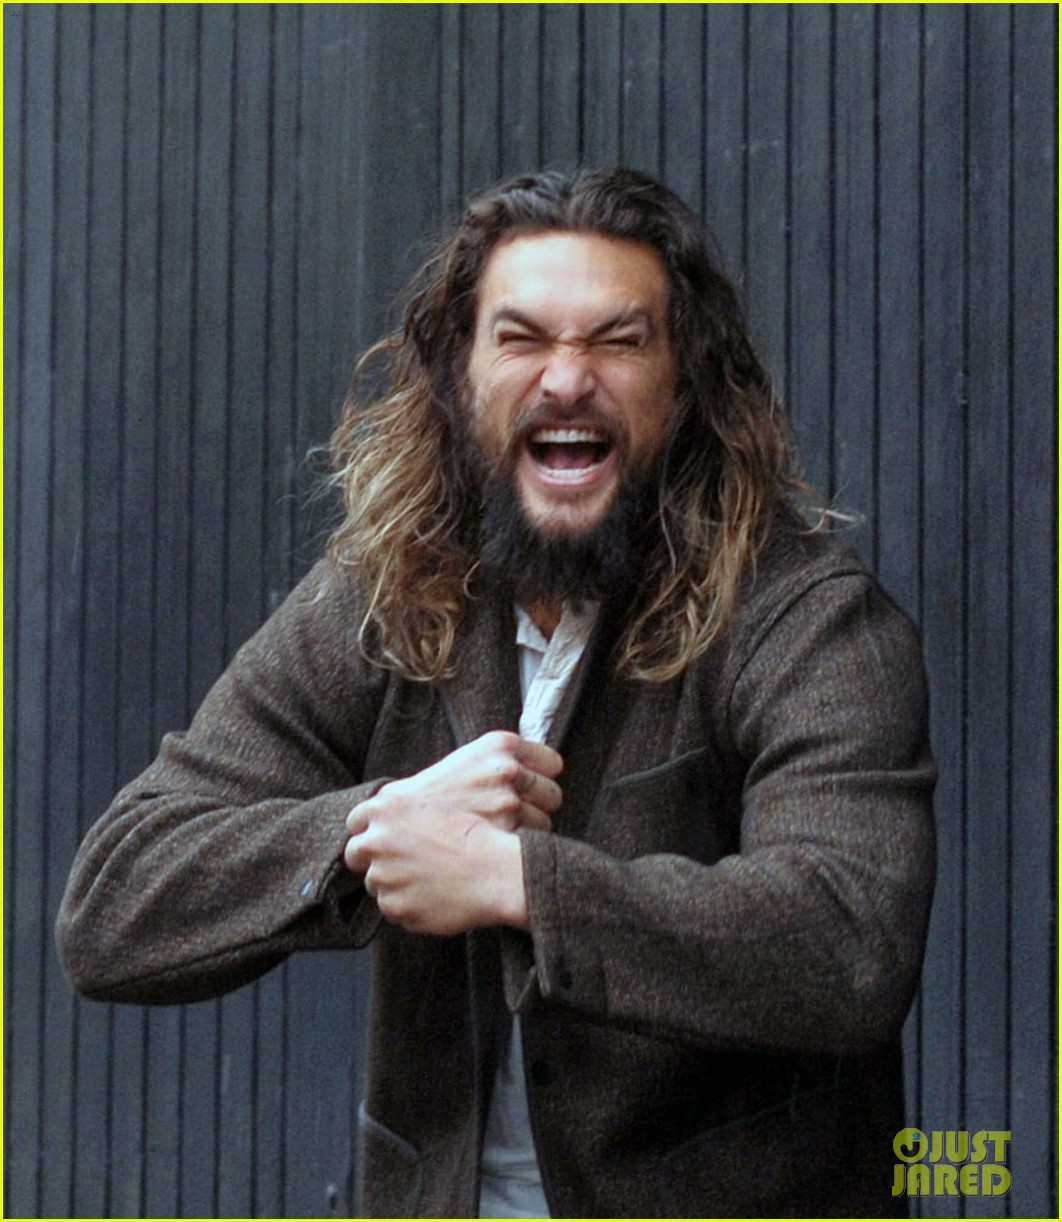 Jason Momoa Guinness: Jason Momoa Hangs Out At The Guinness Brewery In Ireland